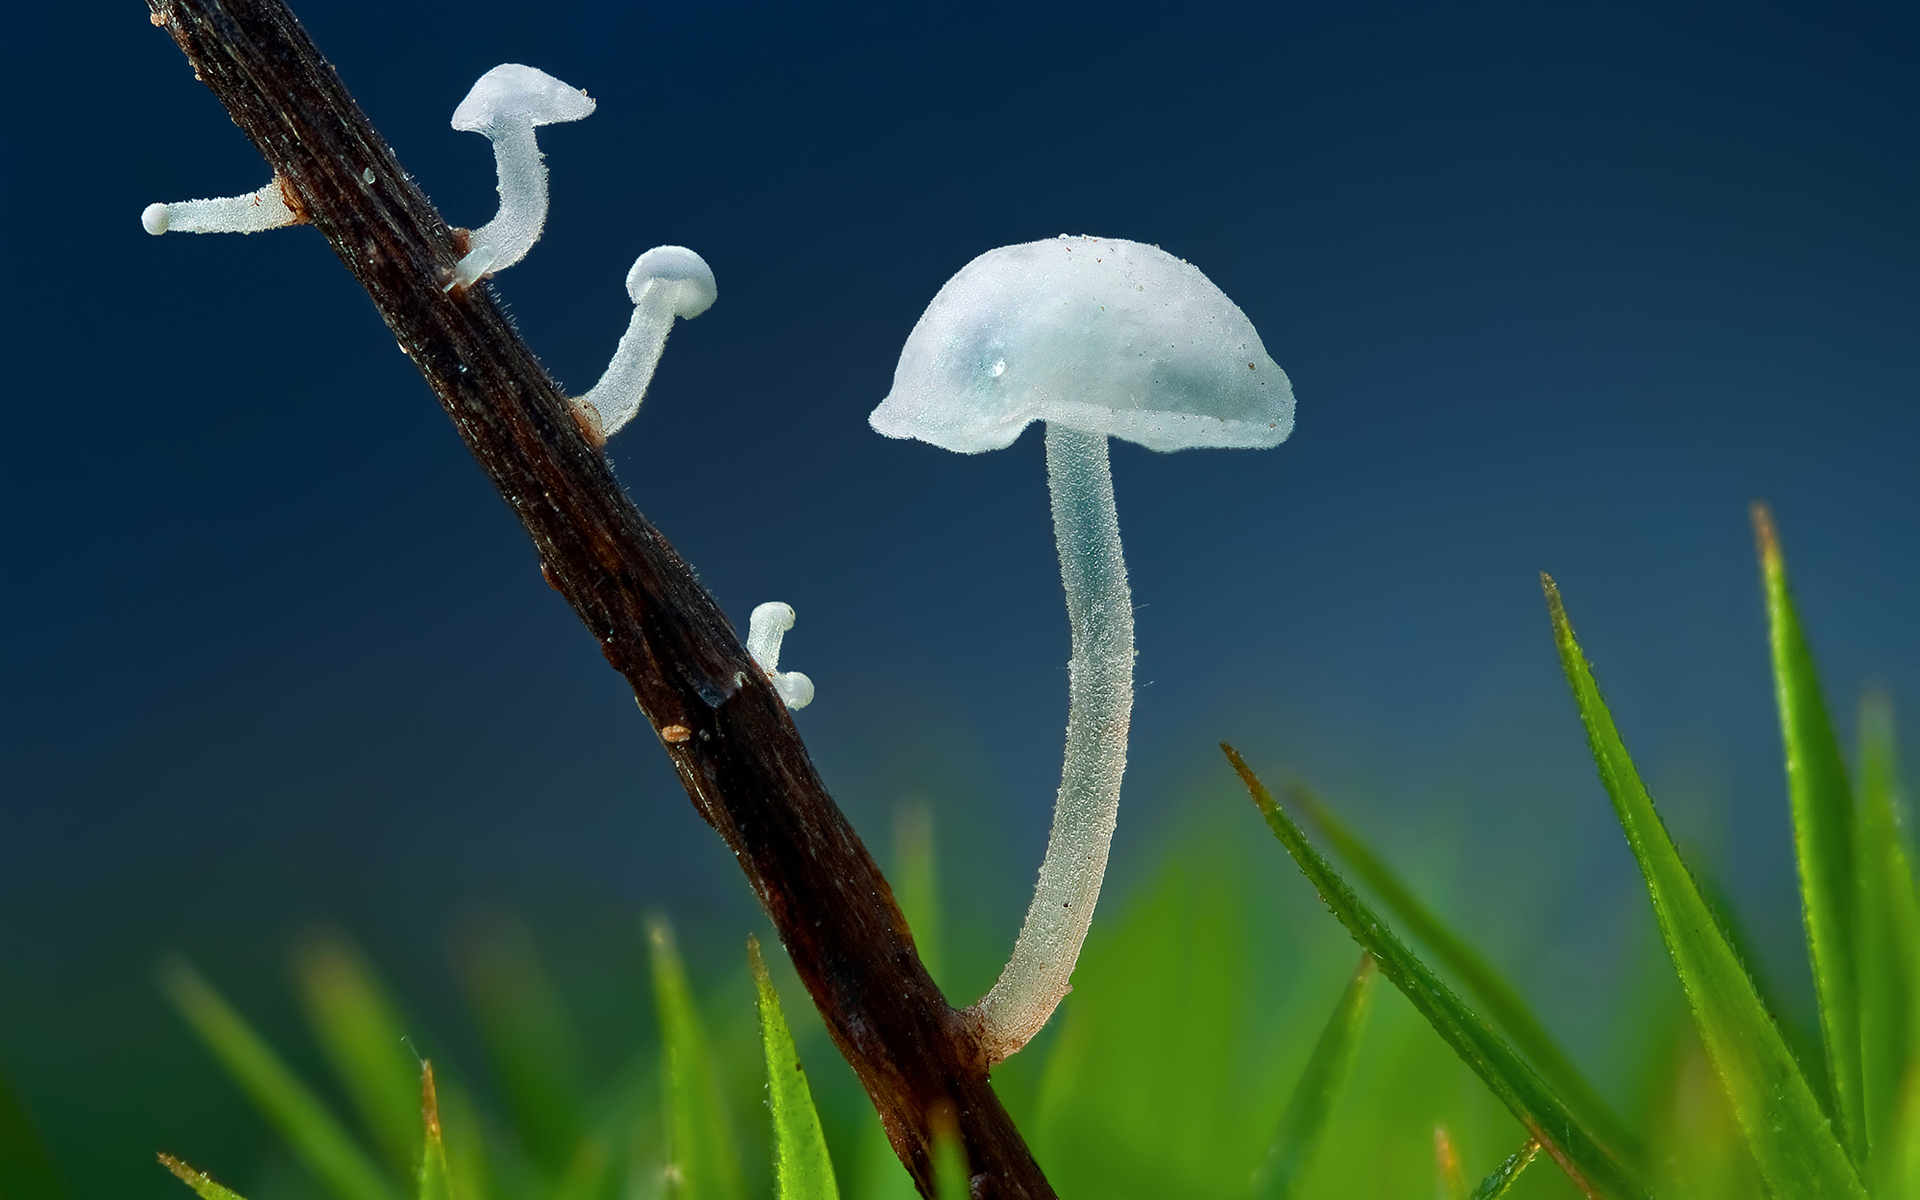 Quality Transparent Mushroom Wallpaper